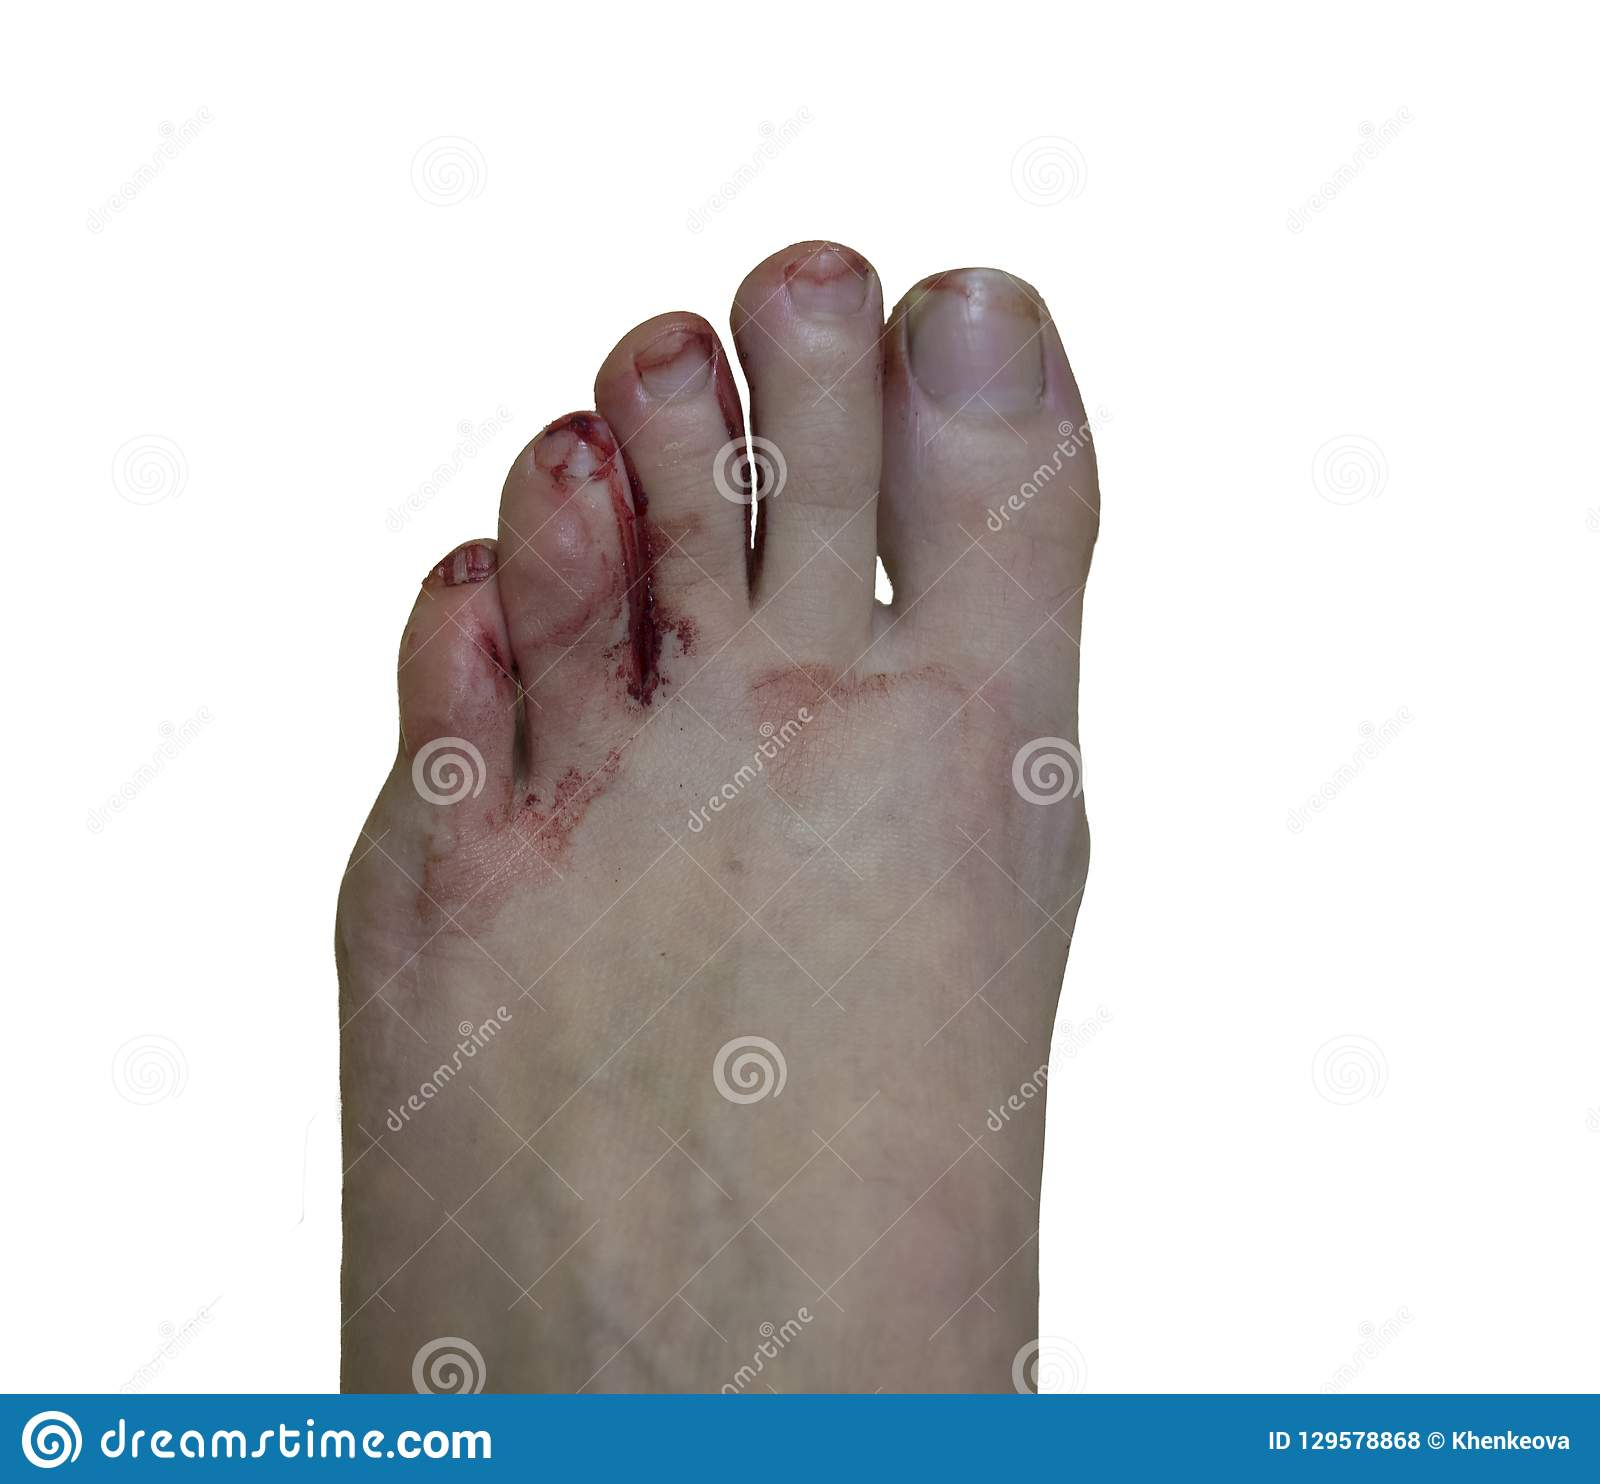 Painful bloody blister fingers on woman feet caused by small new hiking shoes, isolated on white background, top view